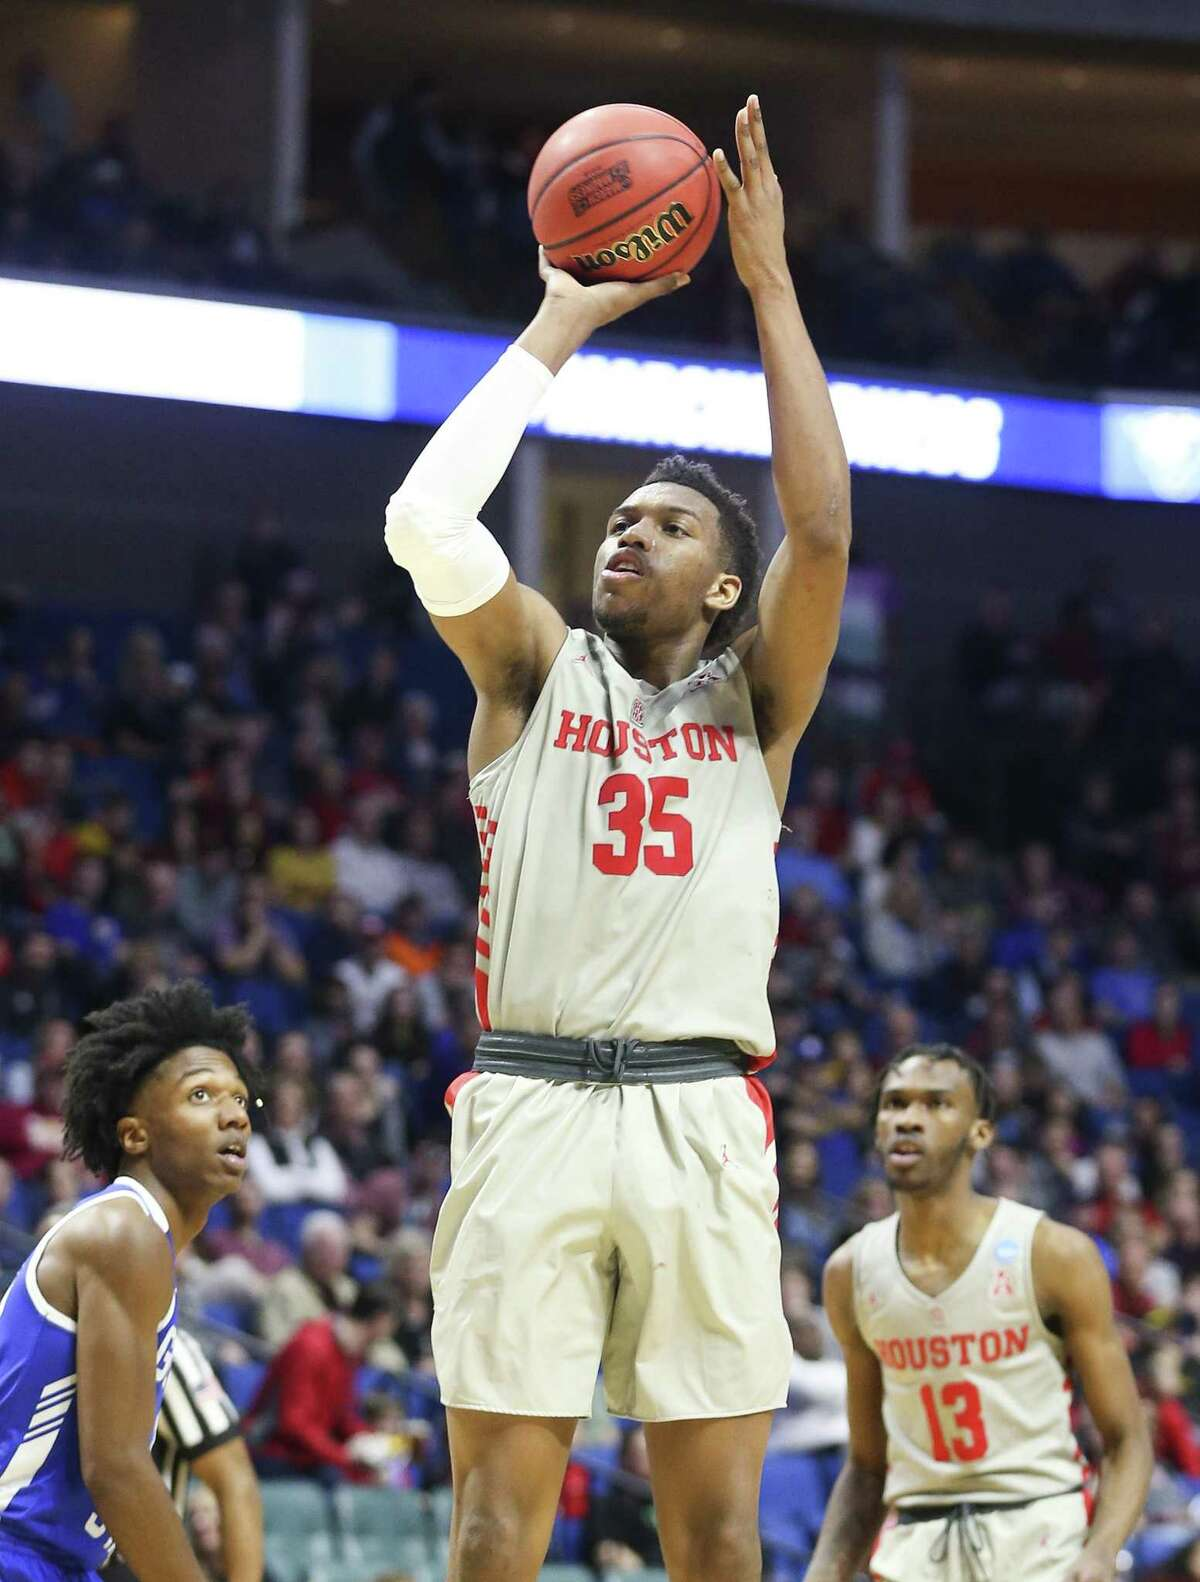 Houston Cougars forward Fabian White Jr. (35) puts up two of his 14 points against Georgia State Panthers during the first round of NCAA playoffs atBOKCenter on Friday, March 22, 2019 in Tulsa. Houston won the game 84-55.